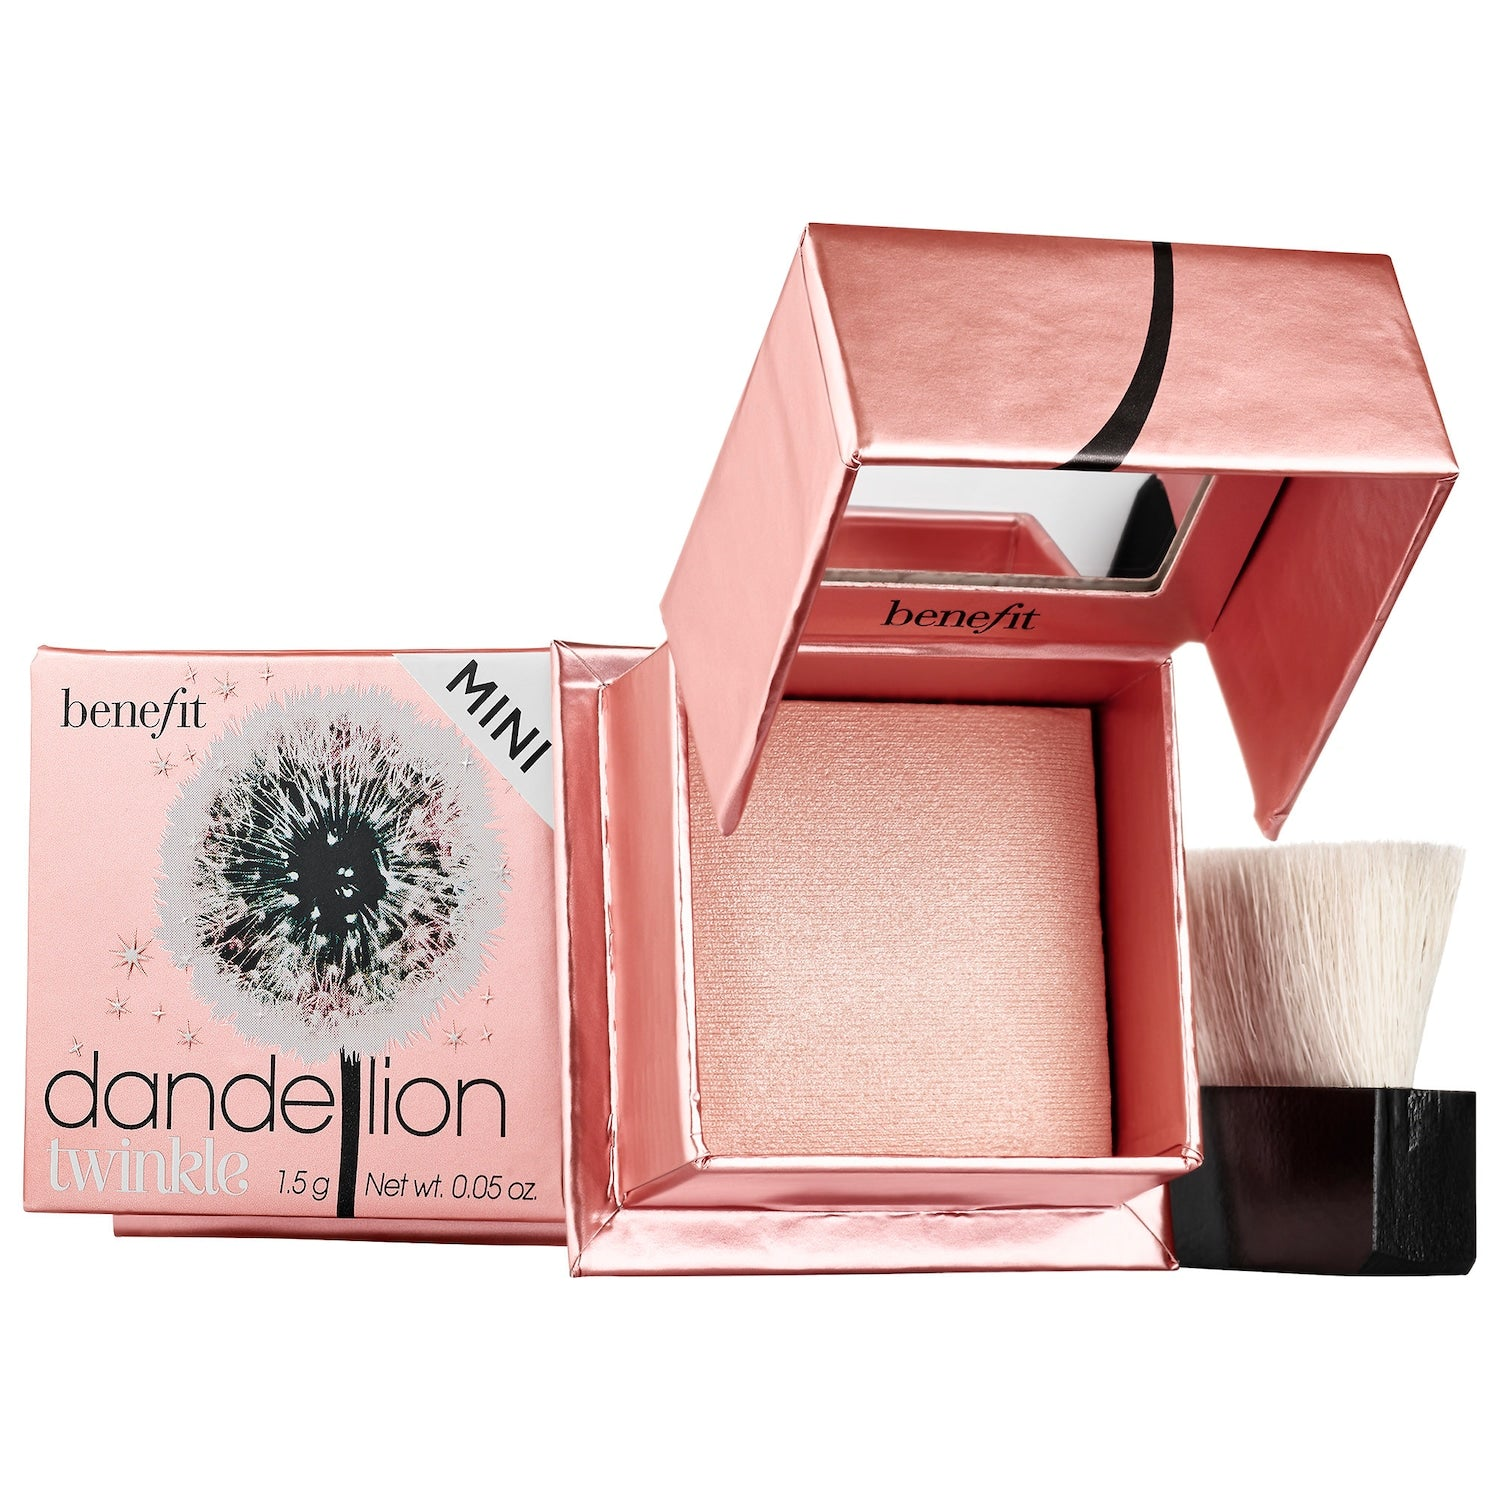 Benefit Cosmetics Dandelion Twinkle Highlighter Mini,1.5g (Unboxed)